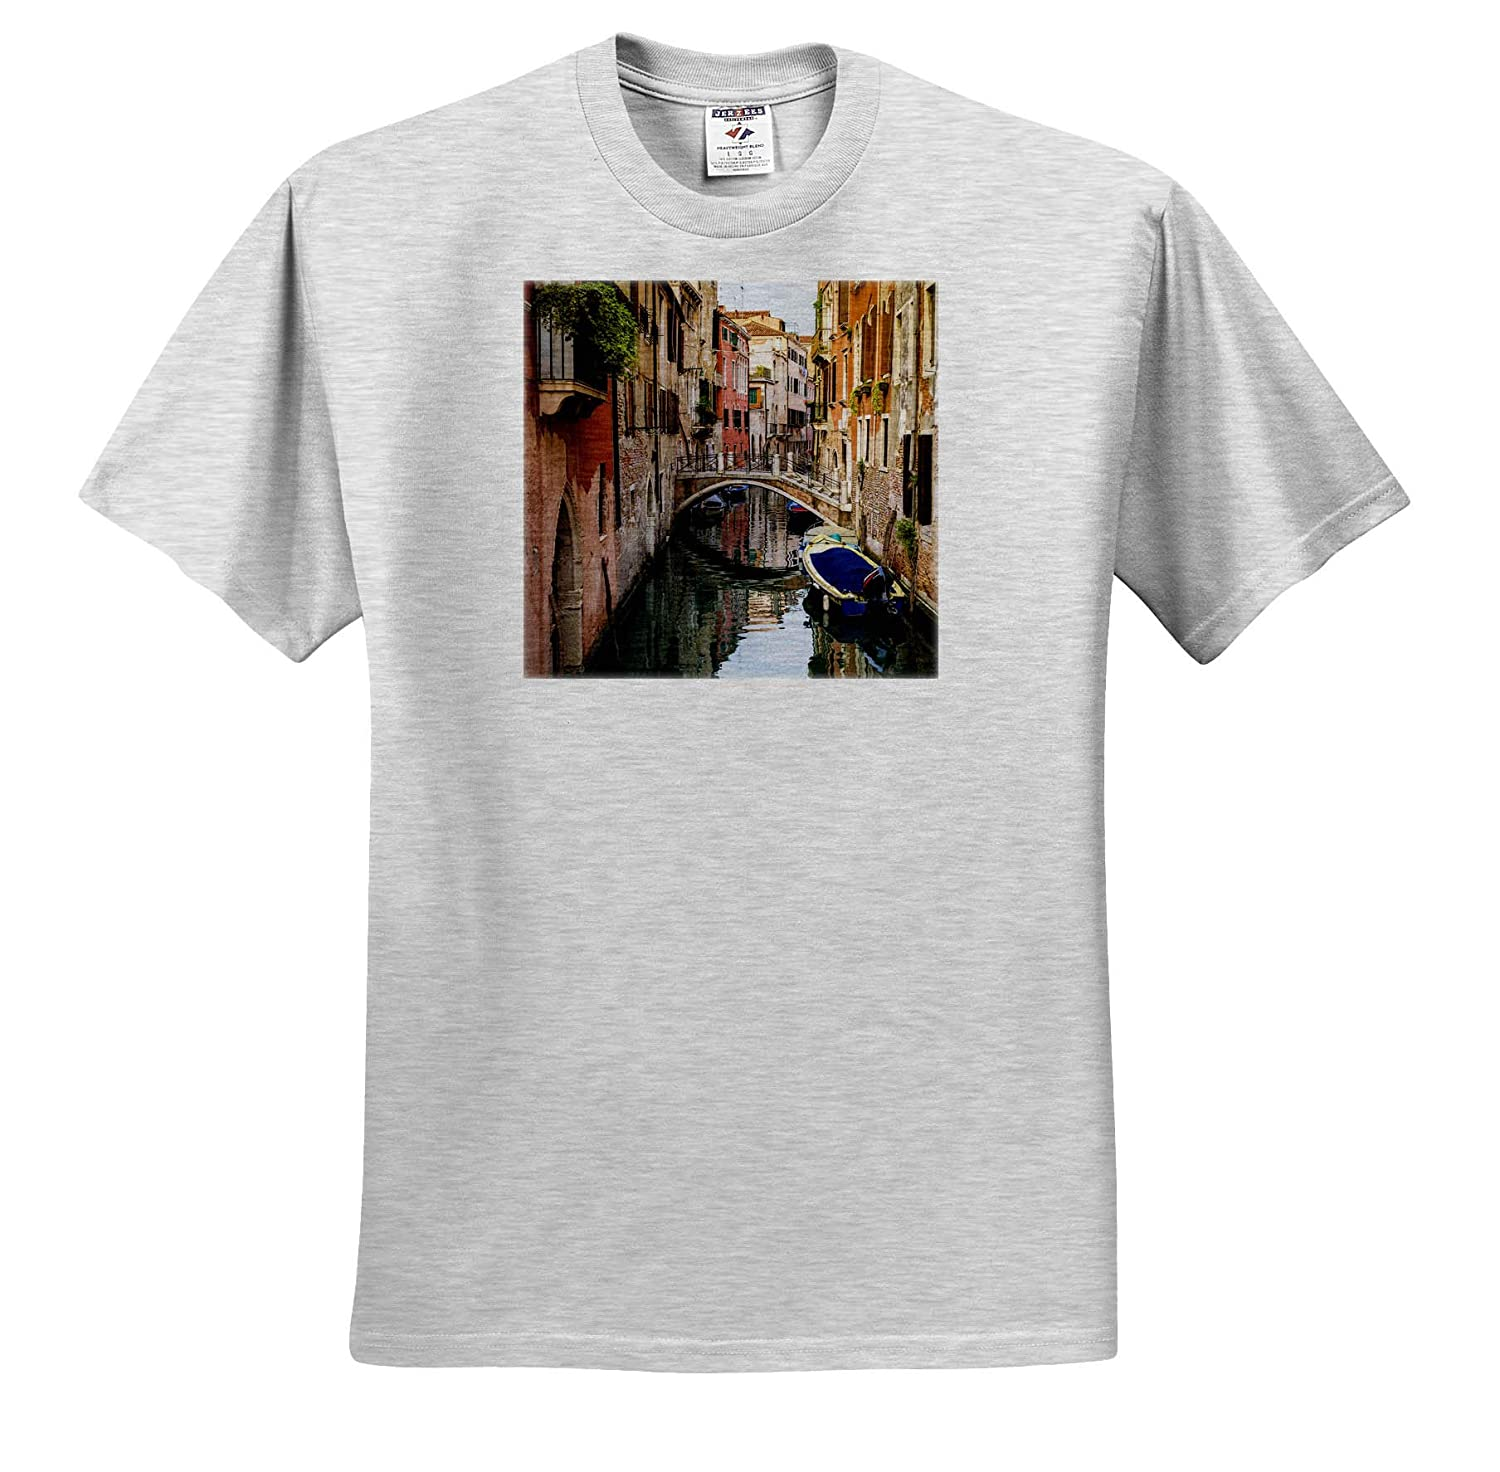 ts/_313740 Bridge and Boats Canal and Houses Italy Adult T-Shirt XL Veneto Venice Venice 3dRose Danita Delimont